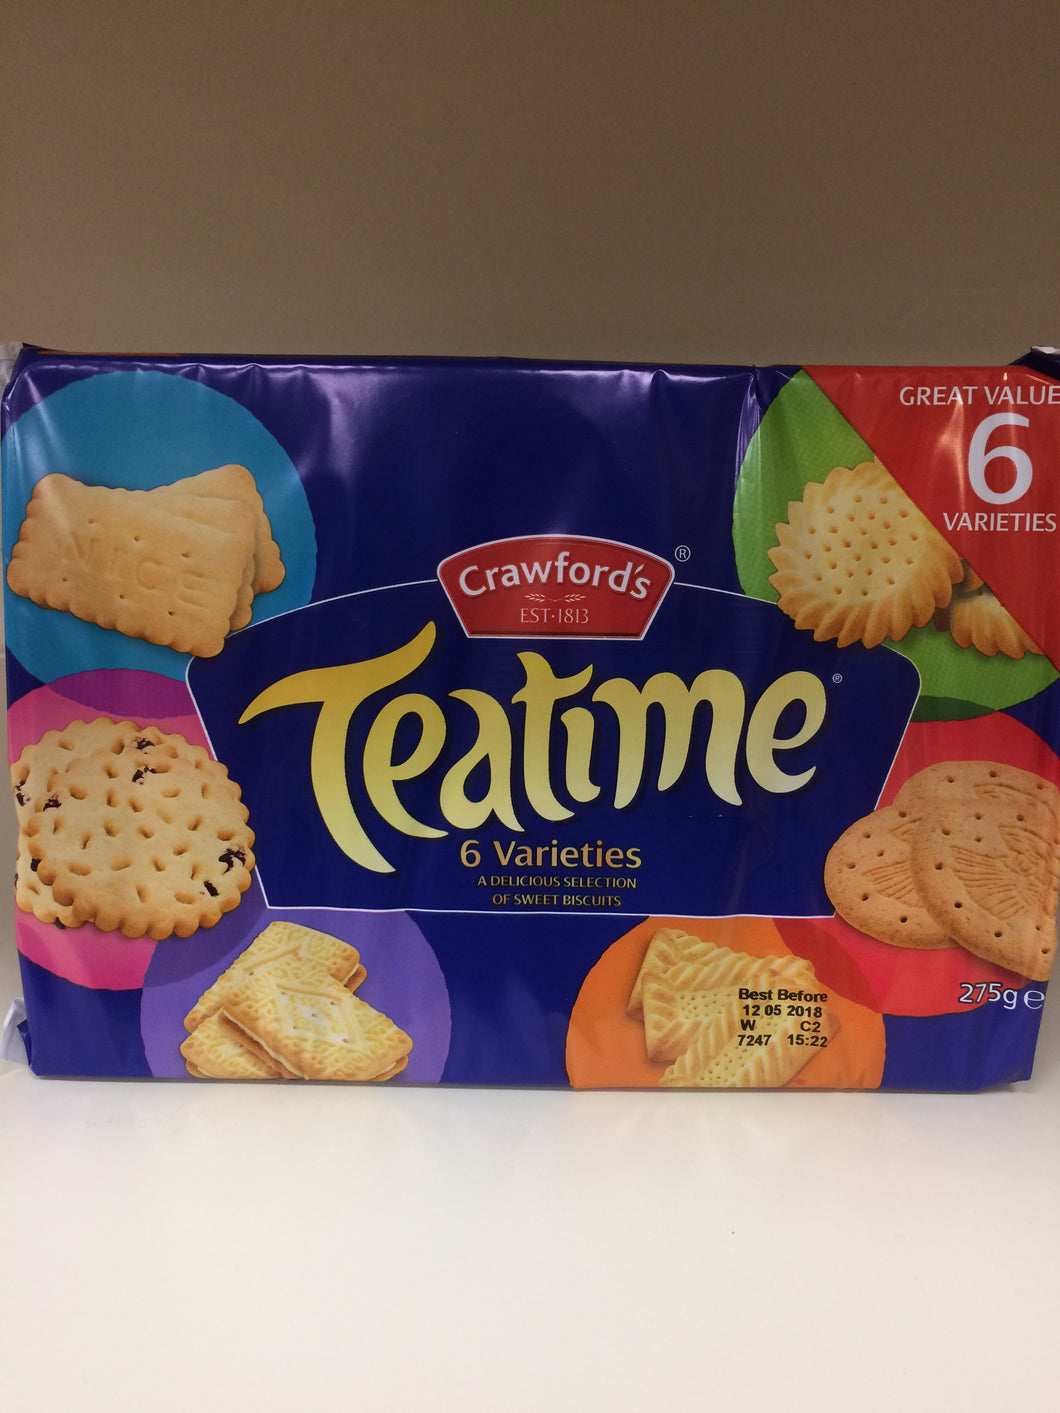 Crawford's Tea Time Biscuits 275g